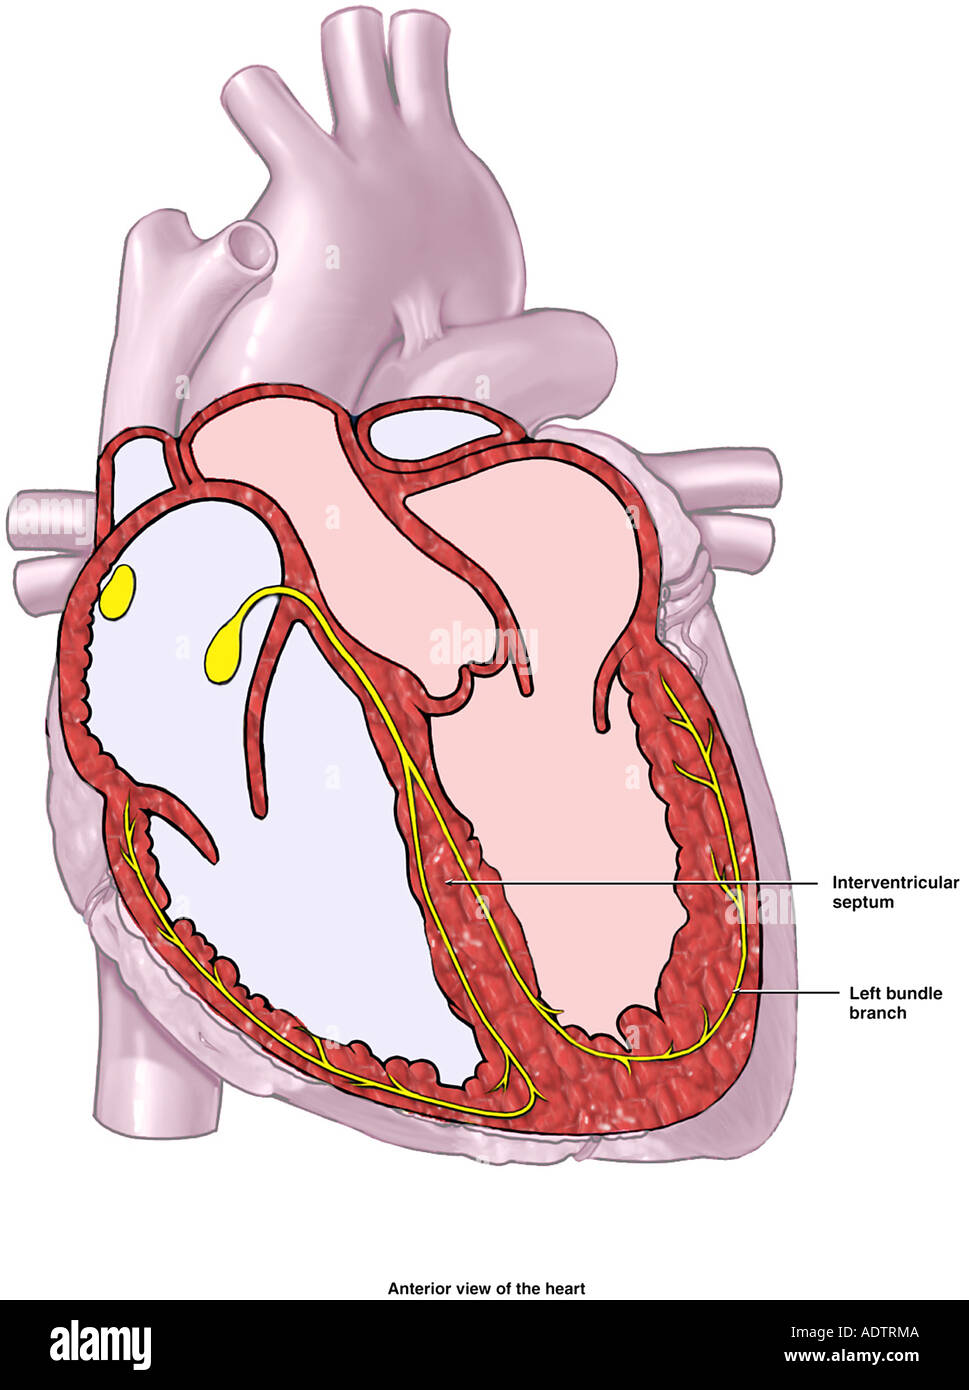 Heart Cardiac Conduction System Diagram Stock Photo 7710089 Alamy